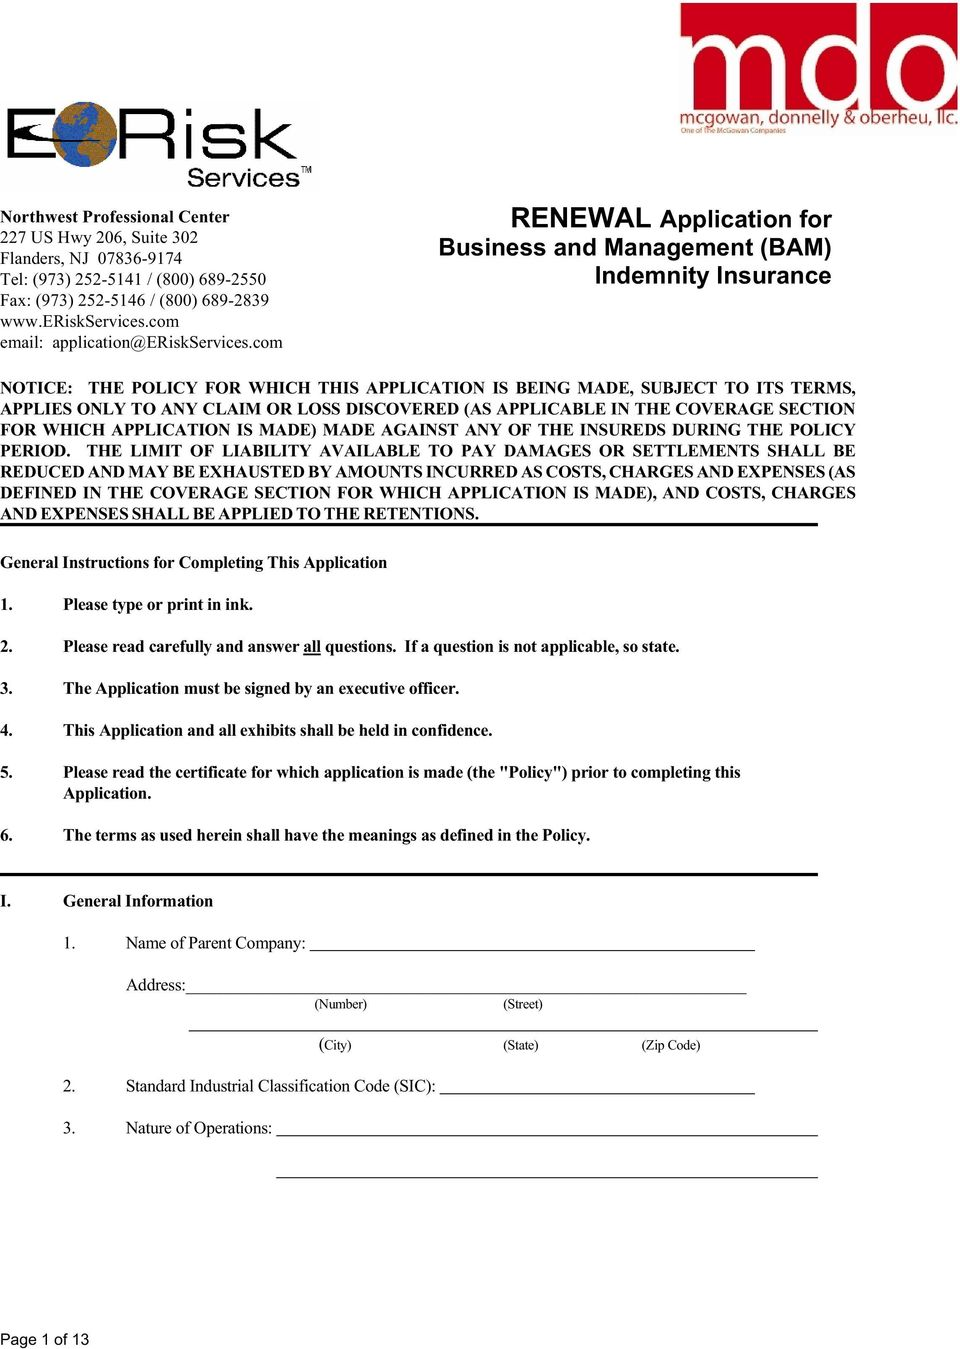 com RENEWAL Application for Business and Management (BAM) Indemnity Insurance NOTICE: THE POLICY FOR WHICH THIS APPLICATION IS BEING MADE, SUBJECT TO ITS TERMS, APPLIES ONLY TO ANY CLAIM OR LOSS